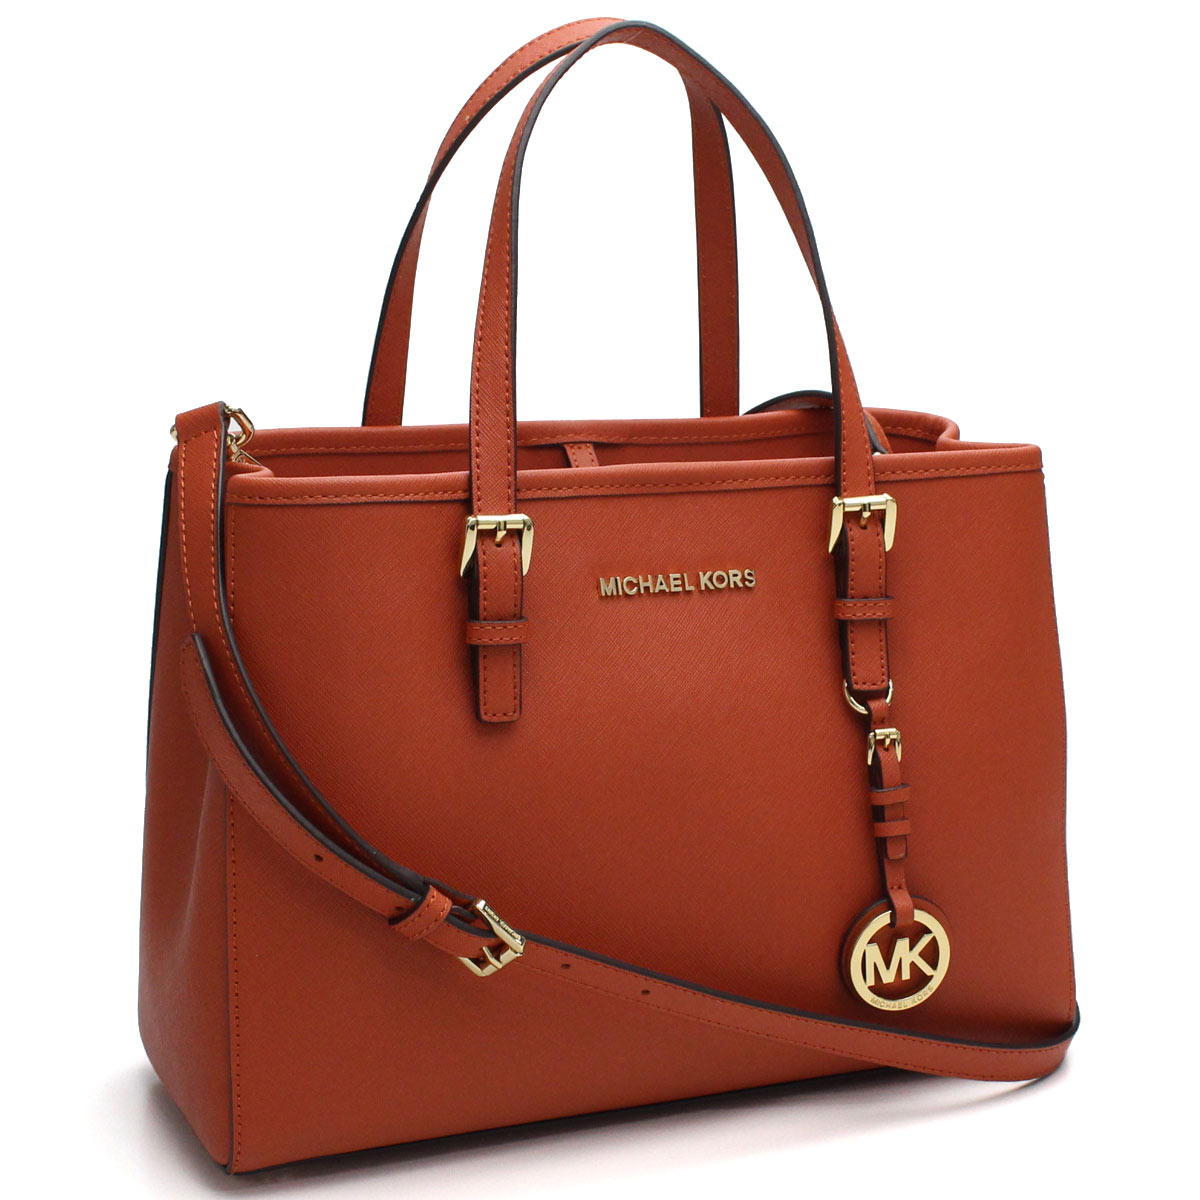 6375d91c7e66 Bighit The total brand wholesale  Michael Kors (MICHAEL KORS) JET SET  TRAVEL tote bag 30H3GTVT8L ORANGE orange system